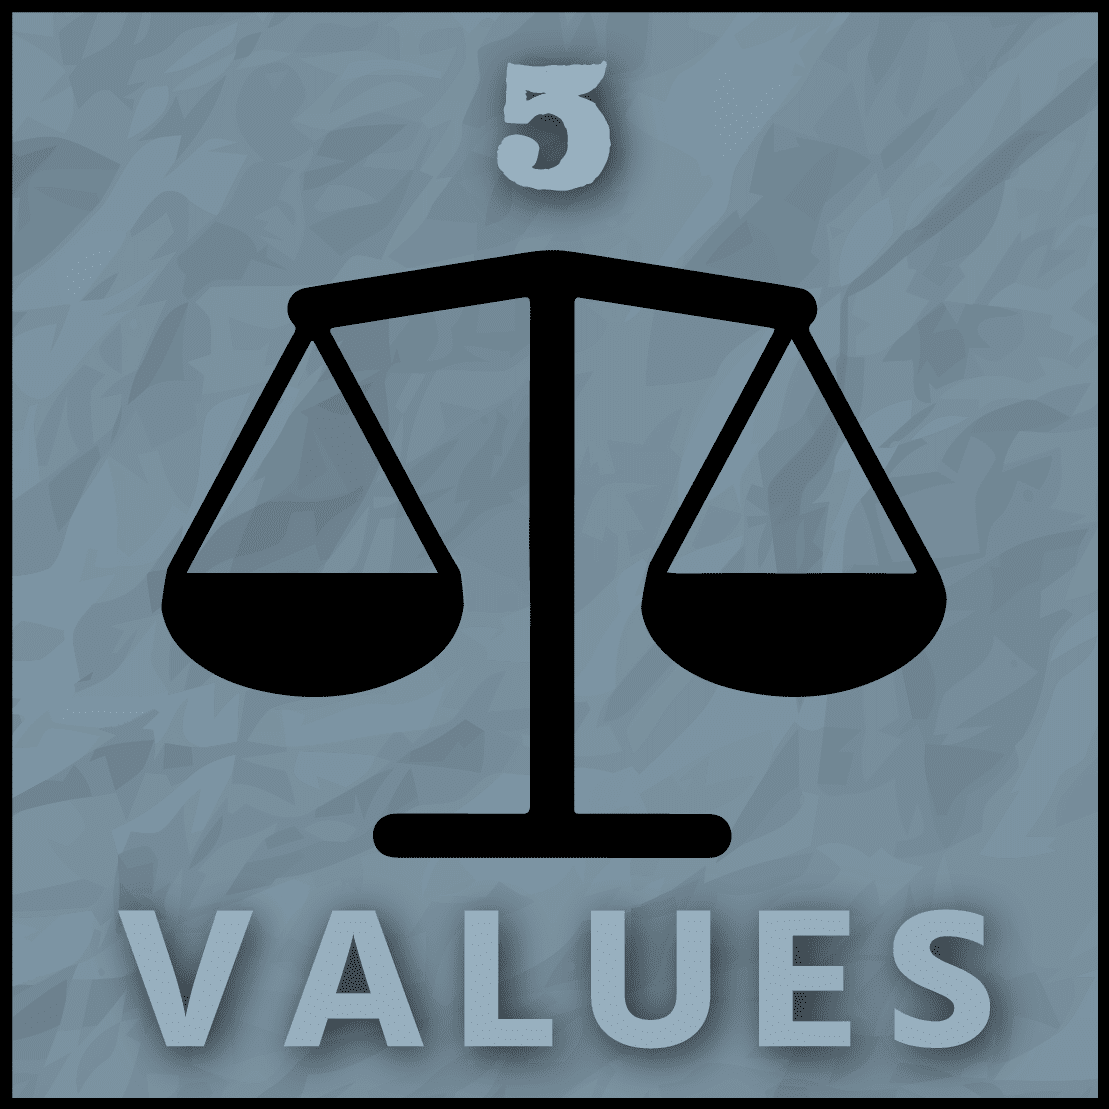 The value of values | type 5 — IEA Nine Points